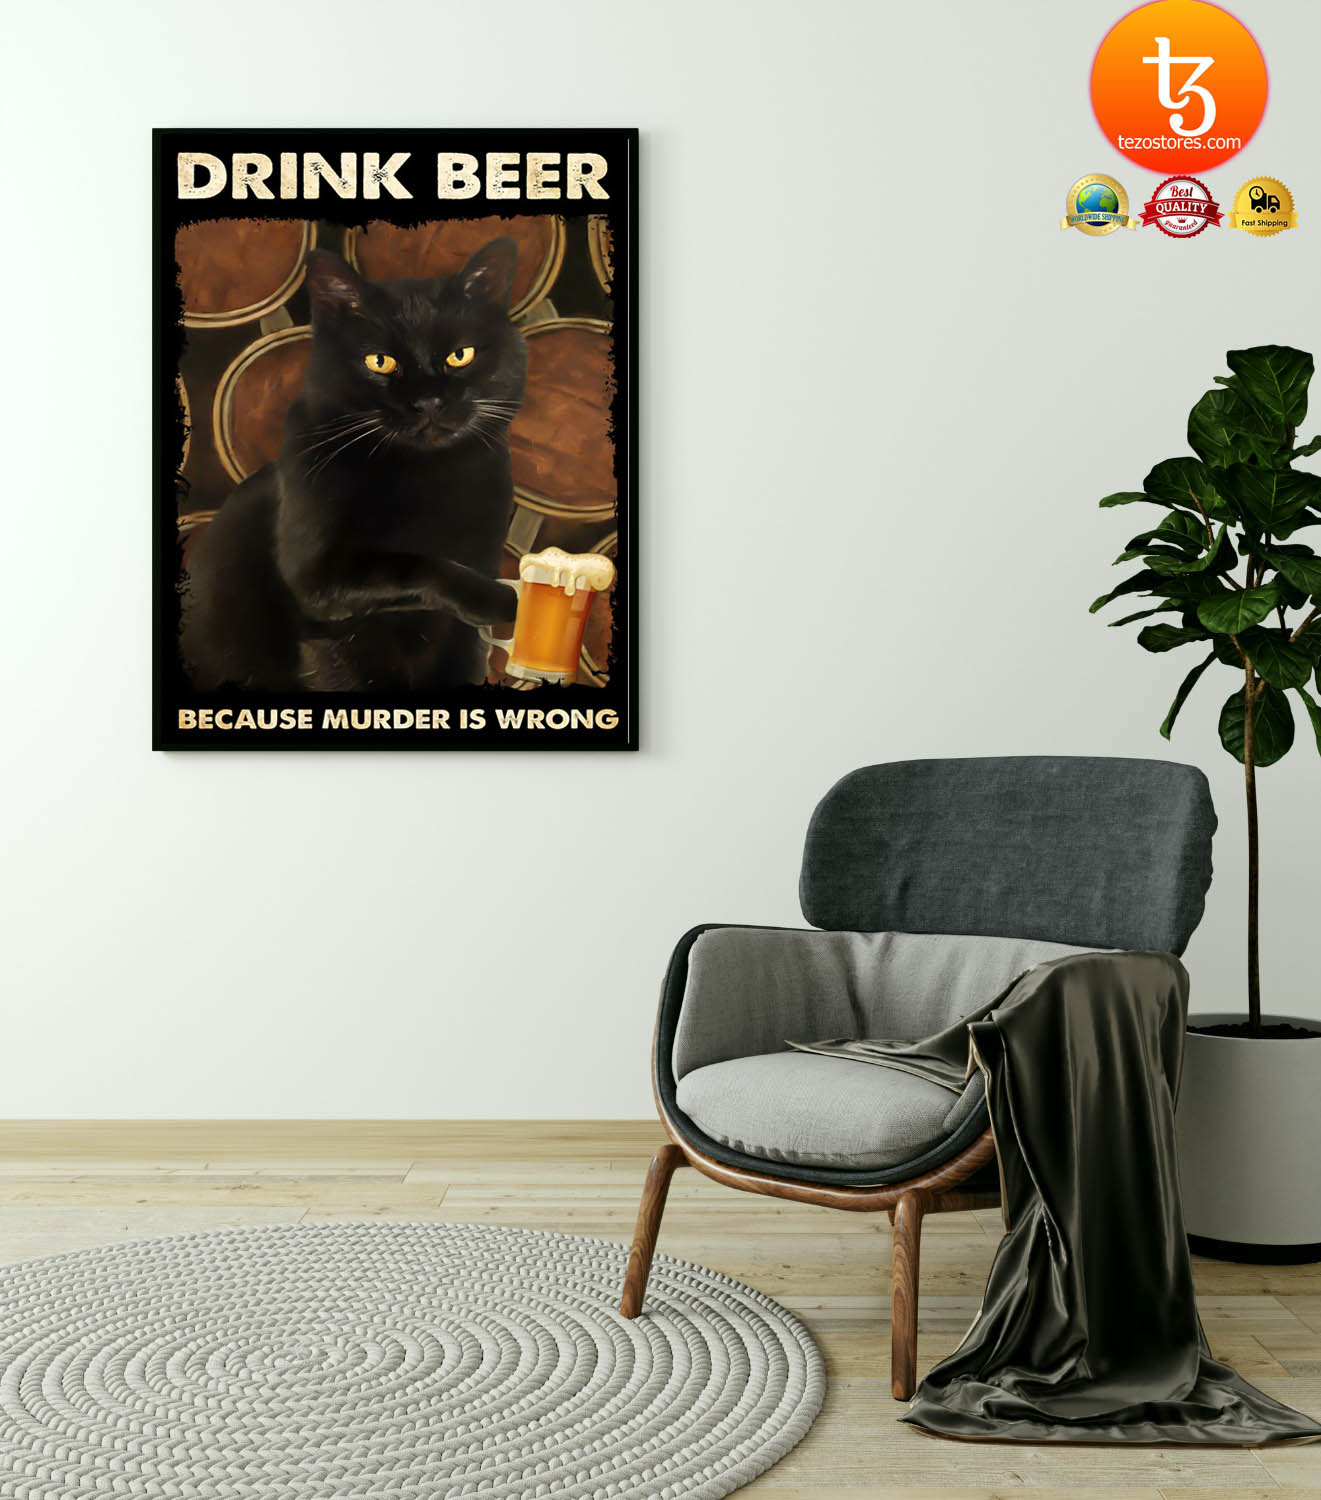 Black cat drink beer because murder is wrong poster 13